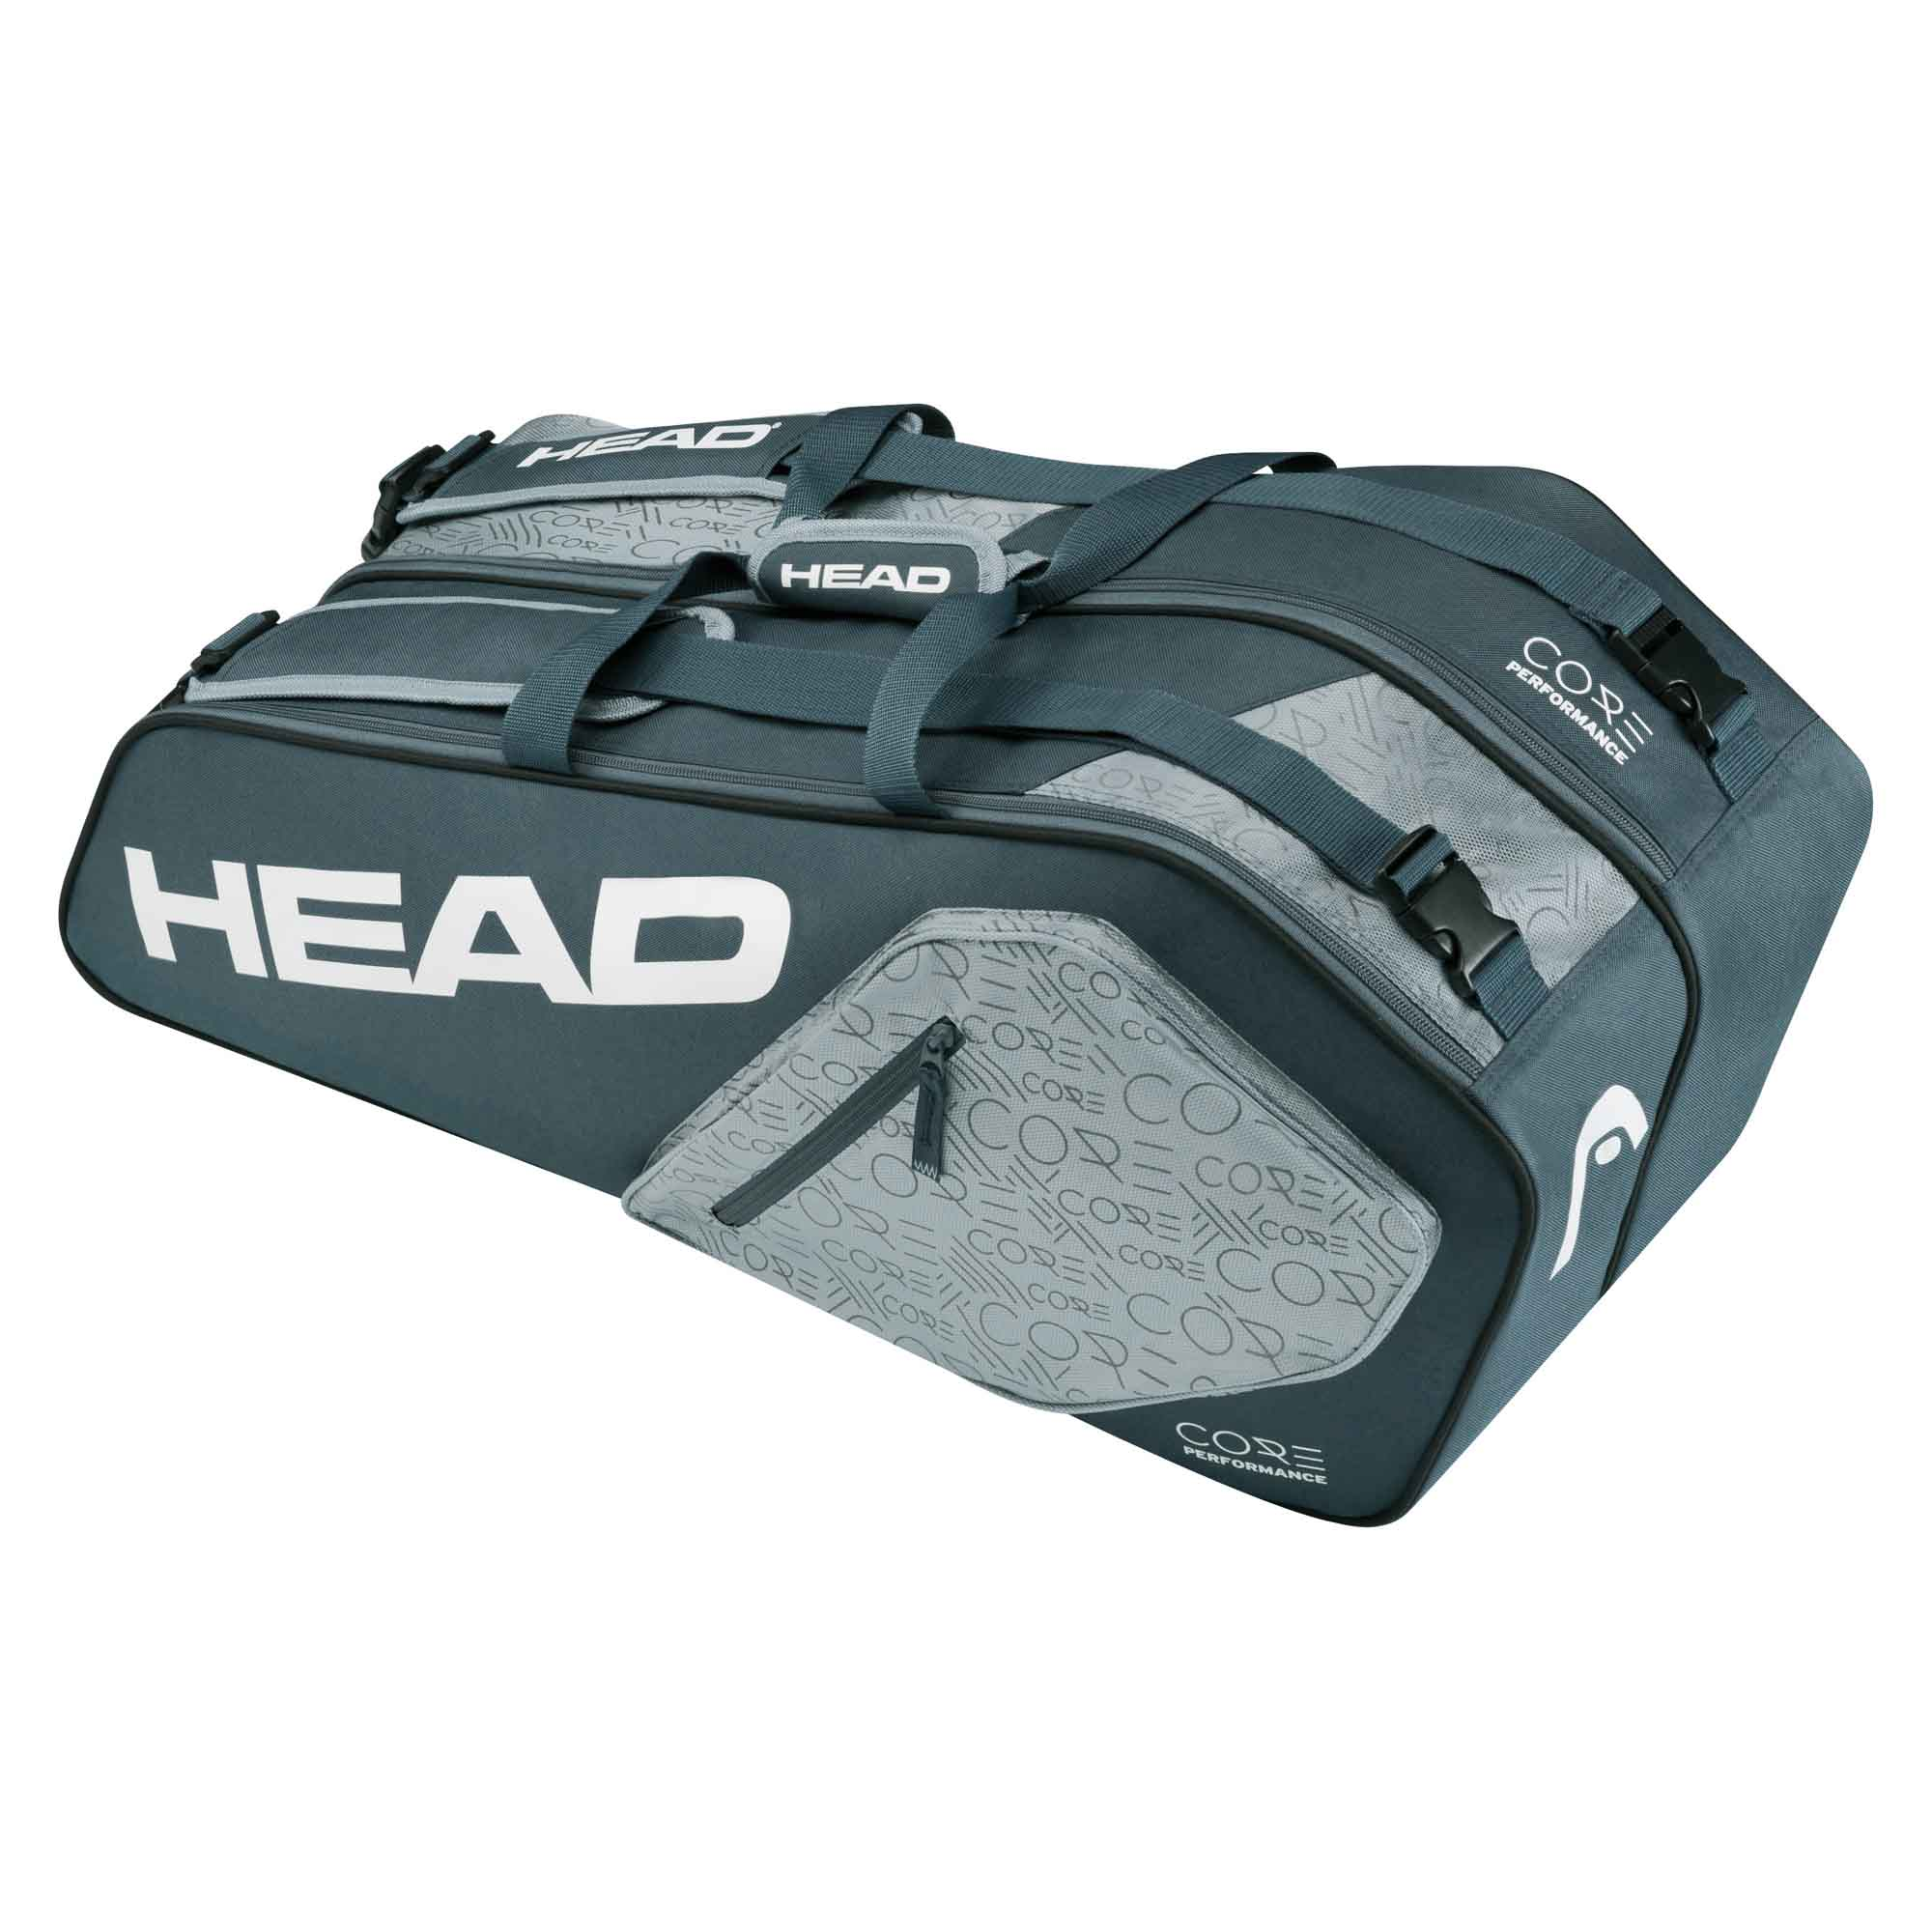 Head Core Combi 6 Racket Bag  Grey